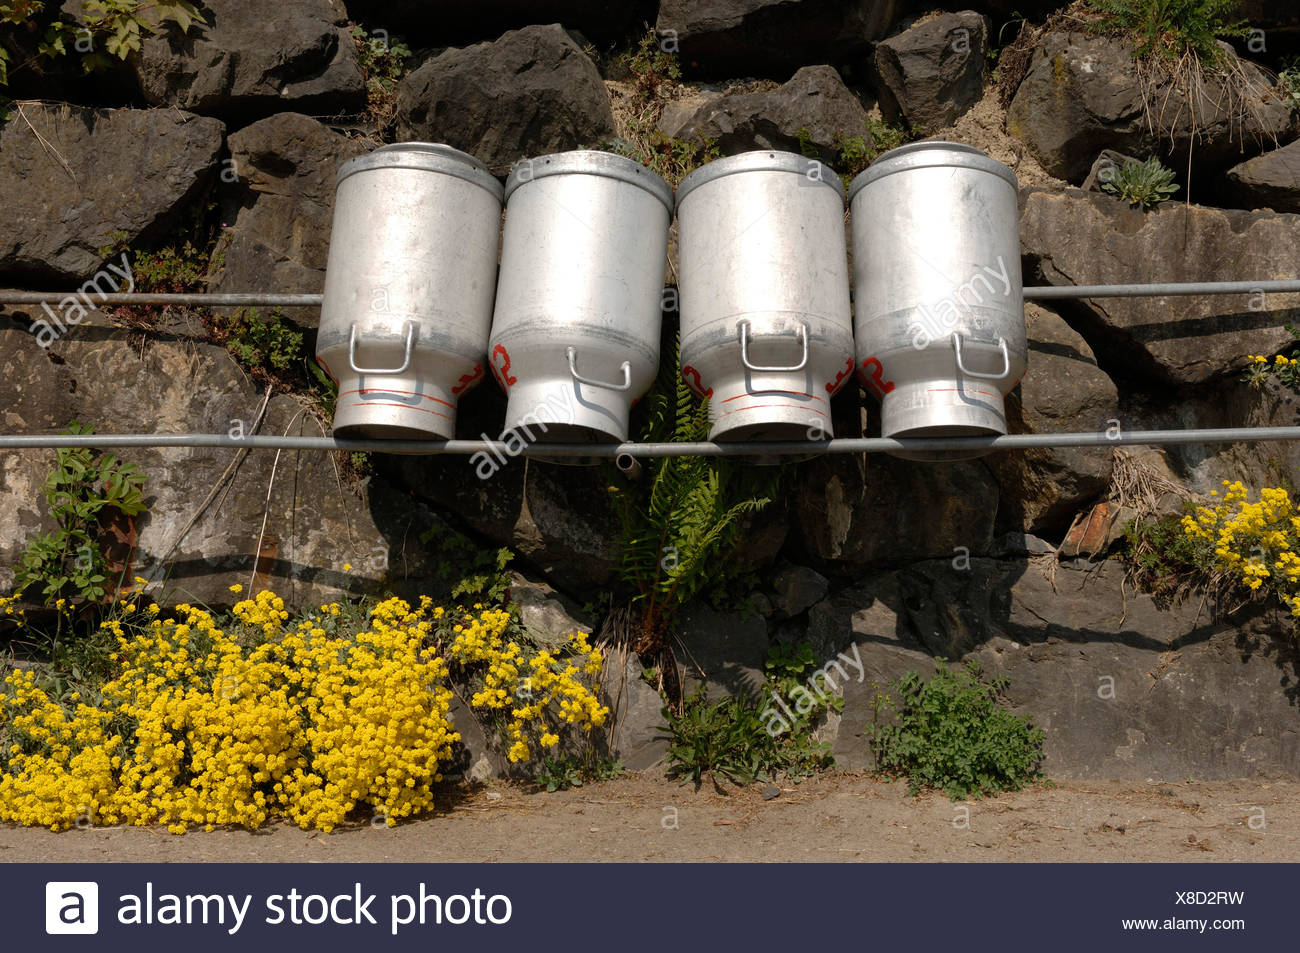 milk chums posed for drying in front of a wall, Switzerland - Stock Image